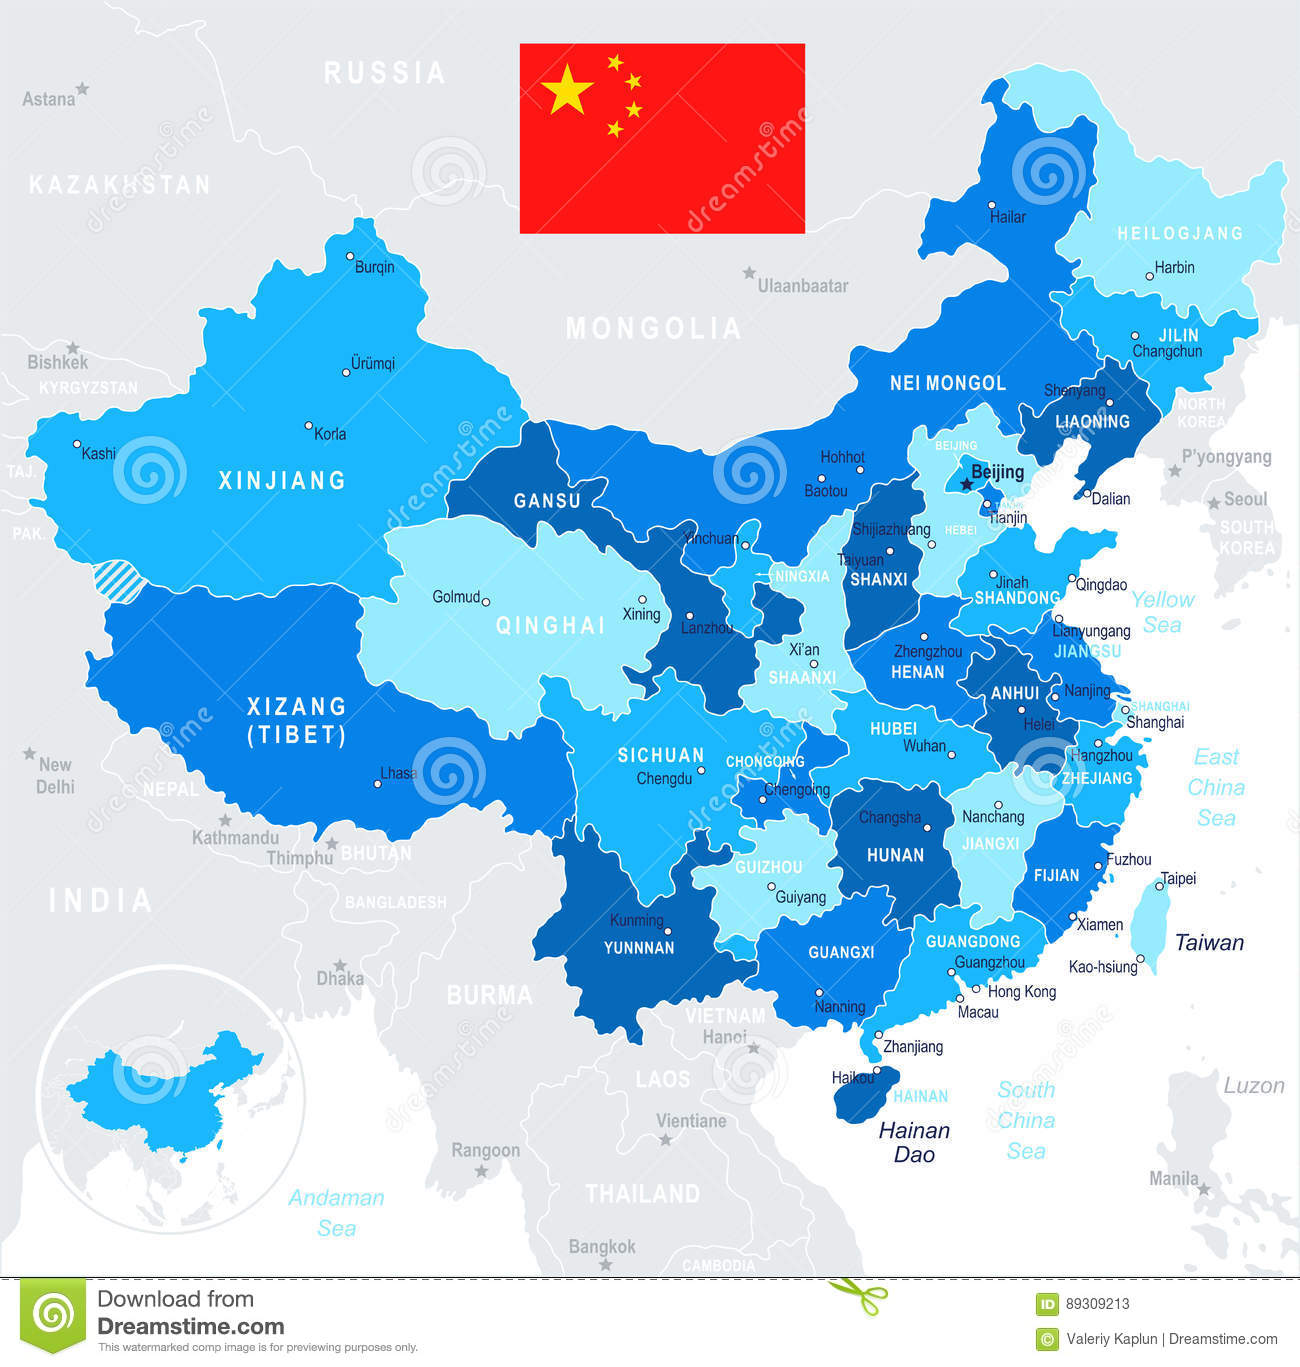 China - Map And Flag - Illustration Stock Illustration ... on chuzhou china map, guangzhou china map, guiyang china map, changping china map, harbin china map, beijing china map, guilin china map, guiping china map, chongqing china map, lanzhou china map, erlian china map, zhuhai china map, henan china map, houjie china map, london china map, shaoxing china map, liaoning china map, hebei china map, nanjing china map, yantai china map,